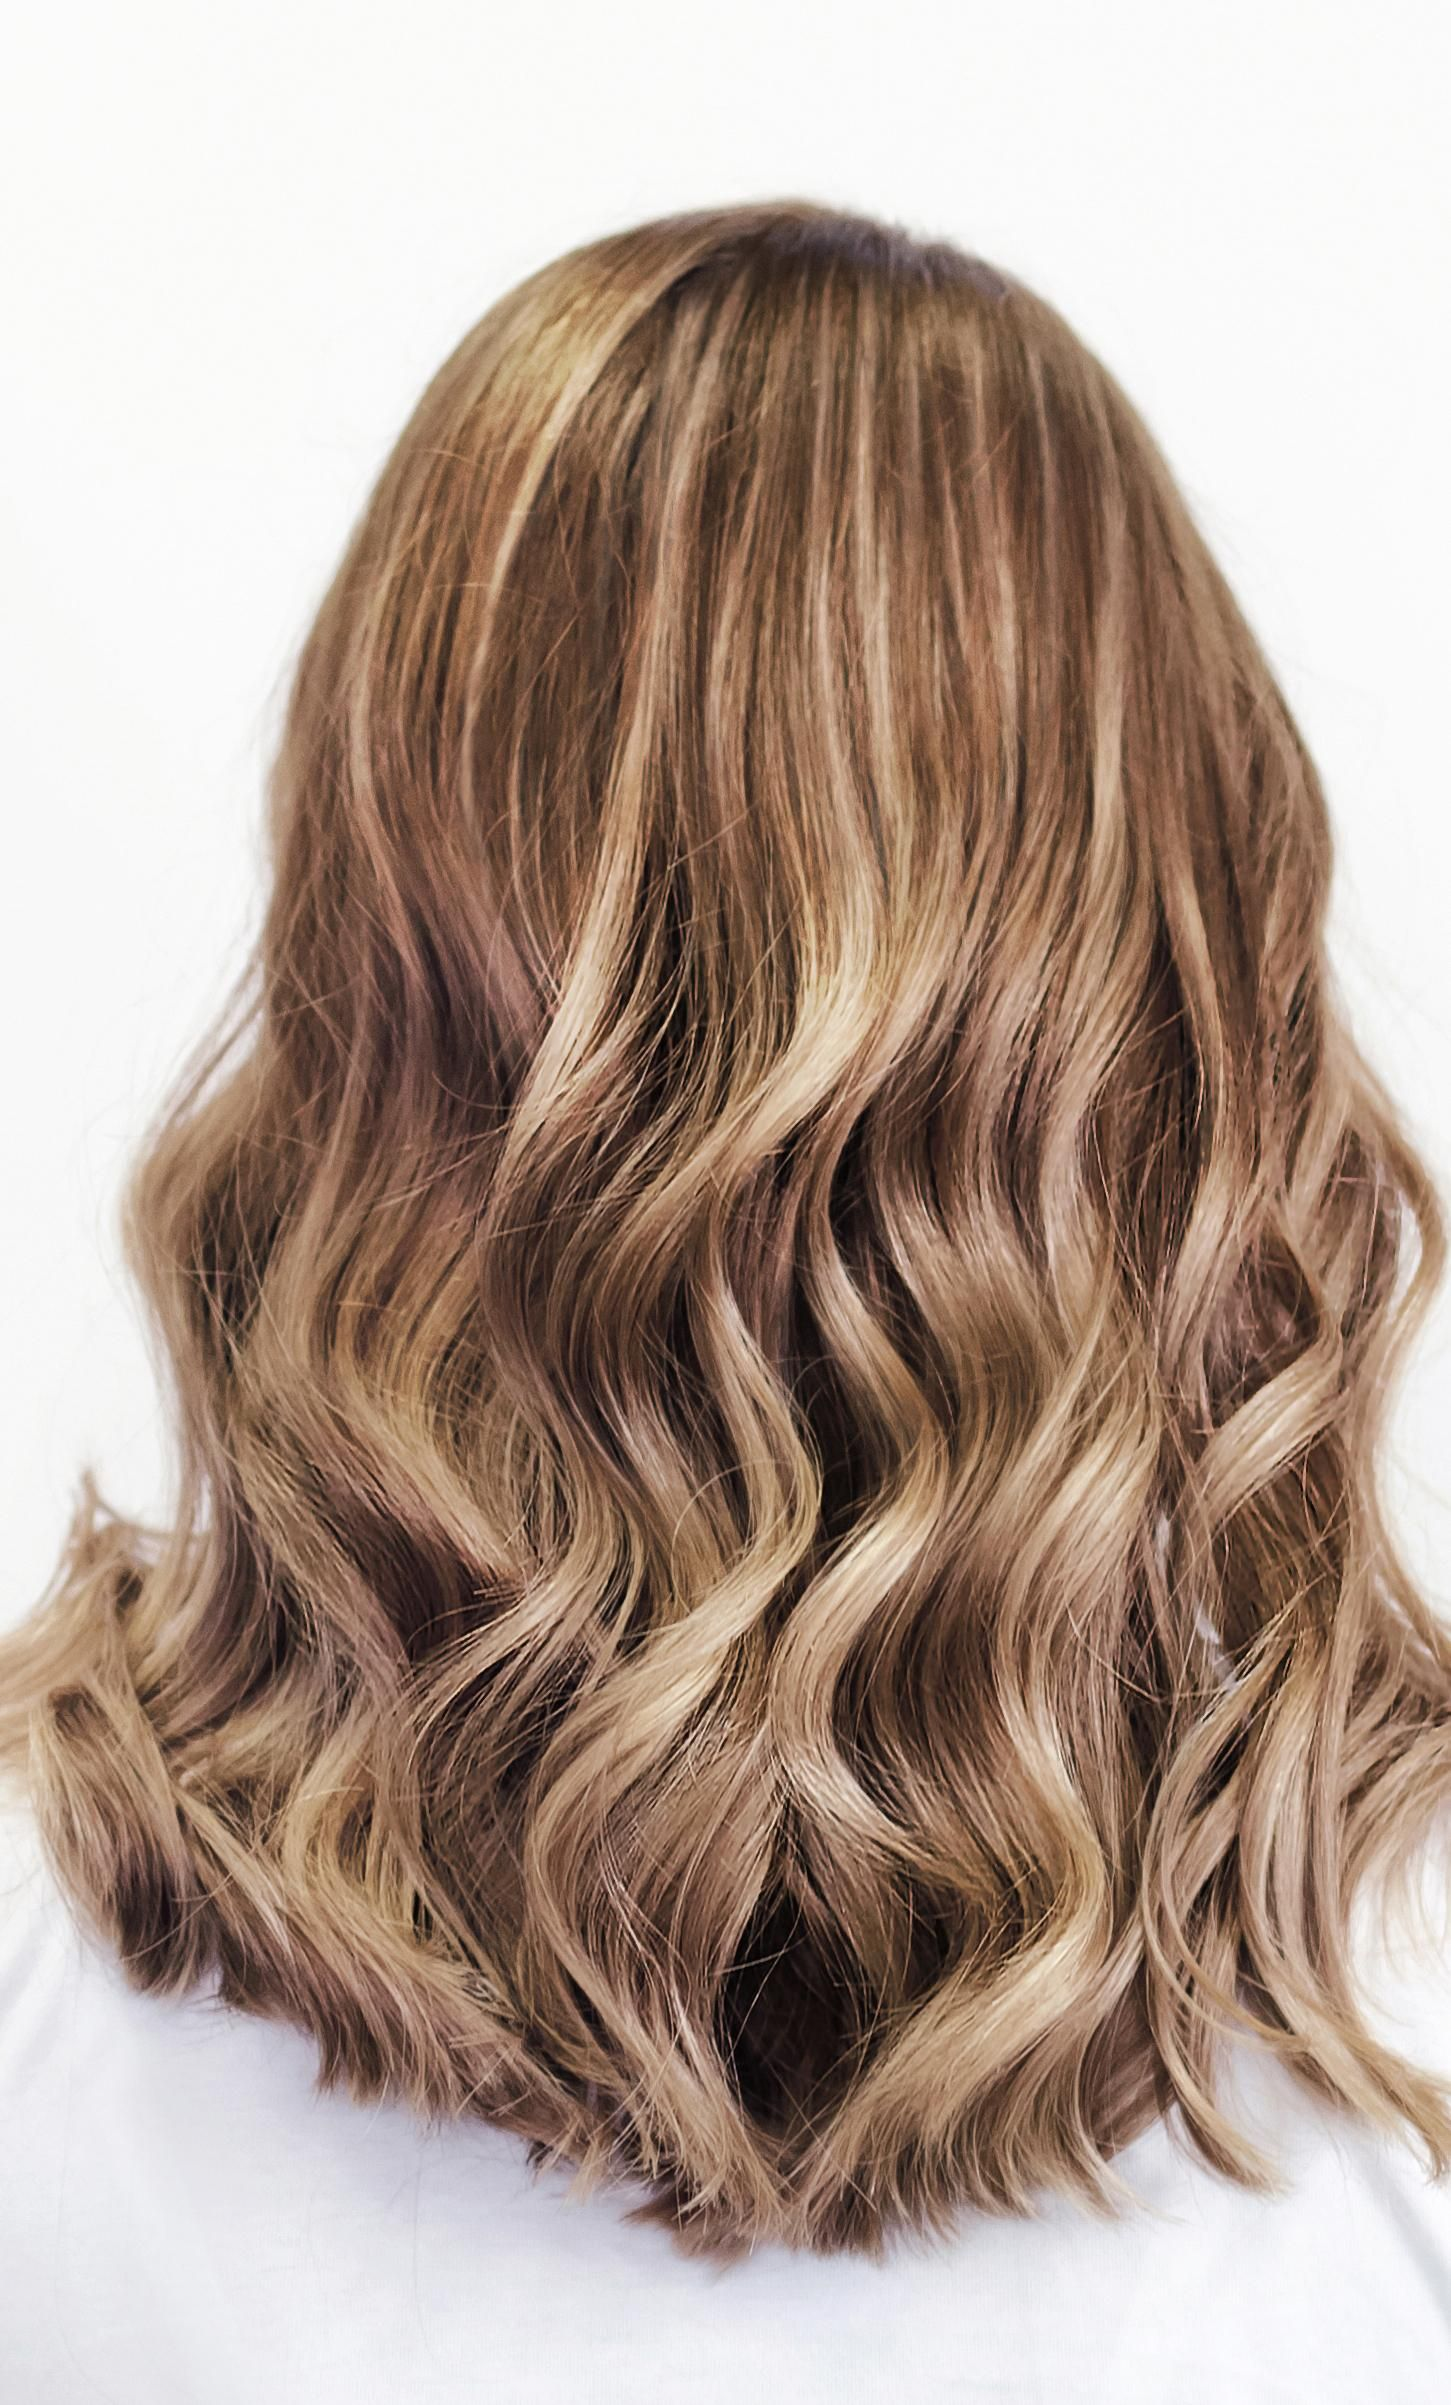 Bologna Blonde 8nva Cool Dark Blonde With Smoky Undertones Permanent Hair Color Perfect Hair Color Hair Color Light Brown Brown Hair Dye